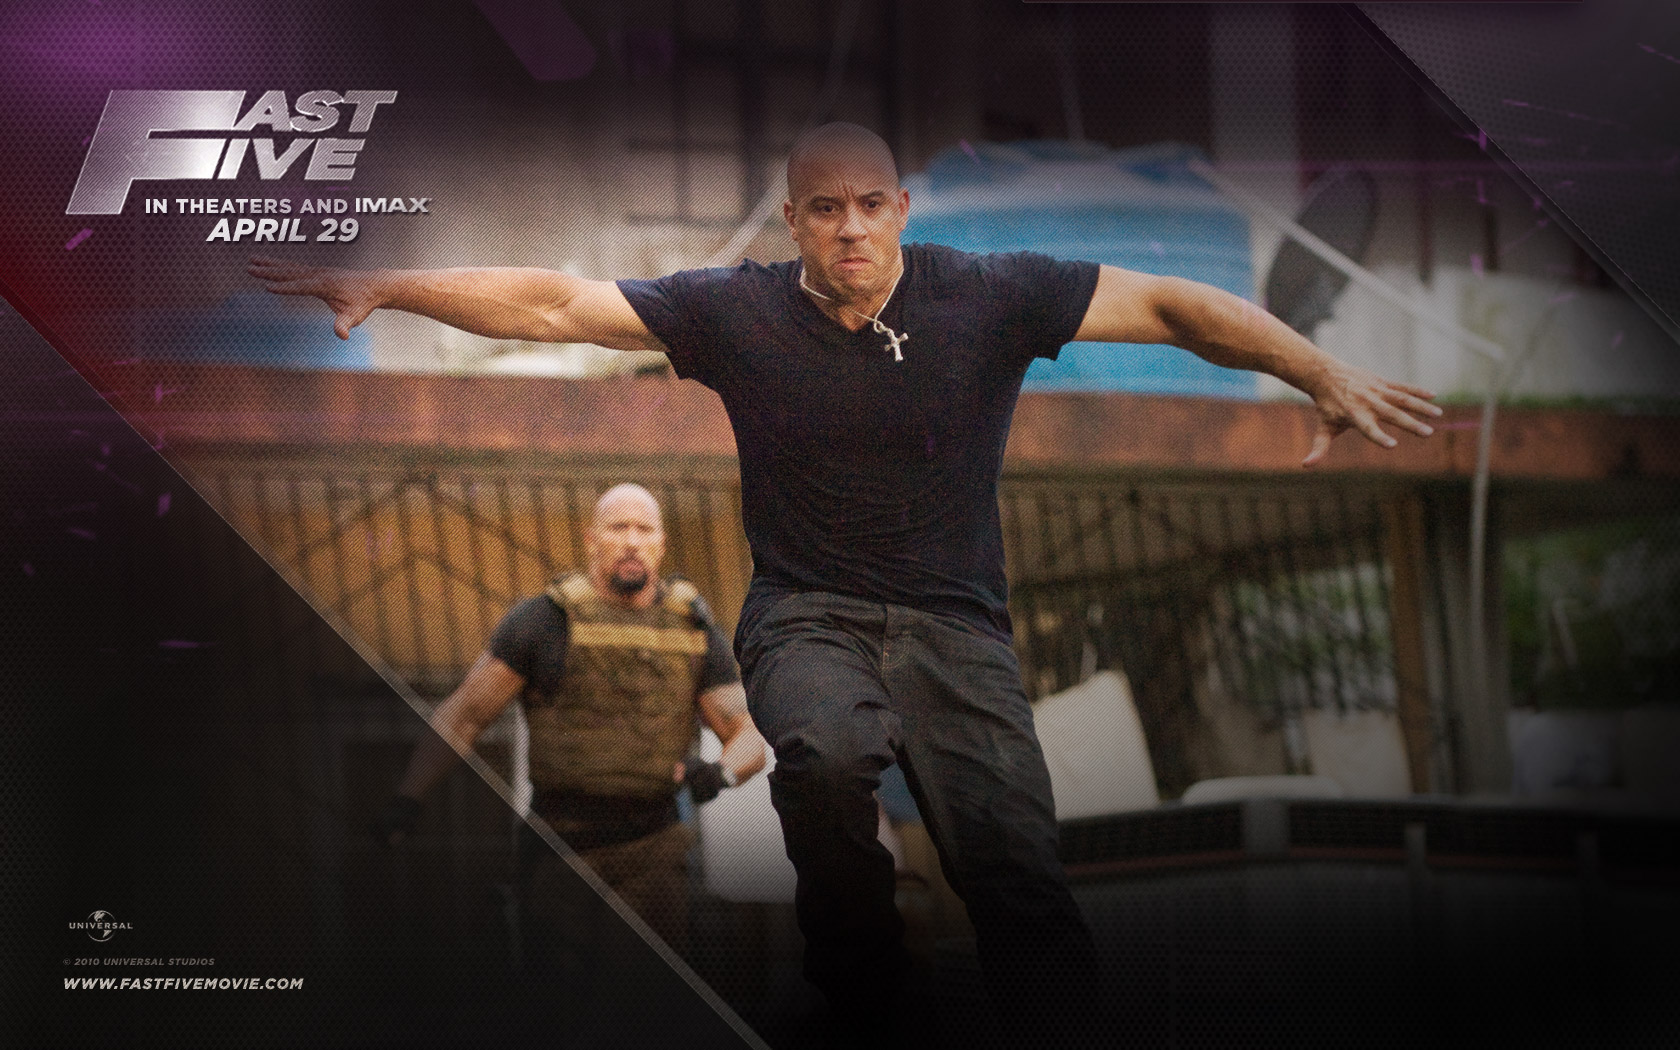 Fast Five Wallpapers 1680x1050   Movie Wallpapers 1680x1050